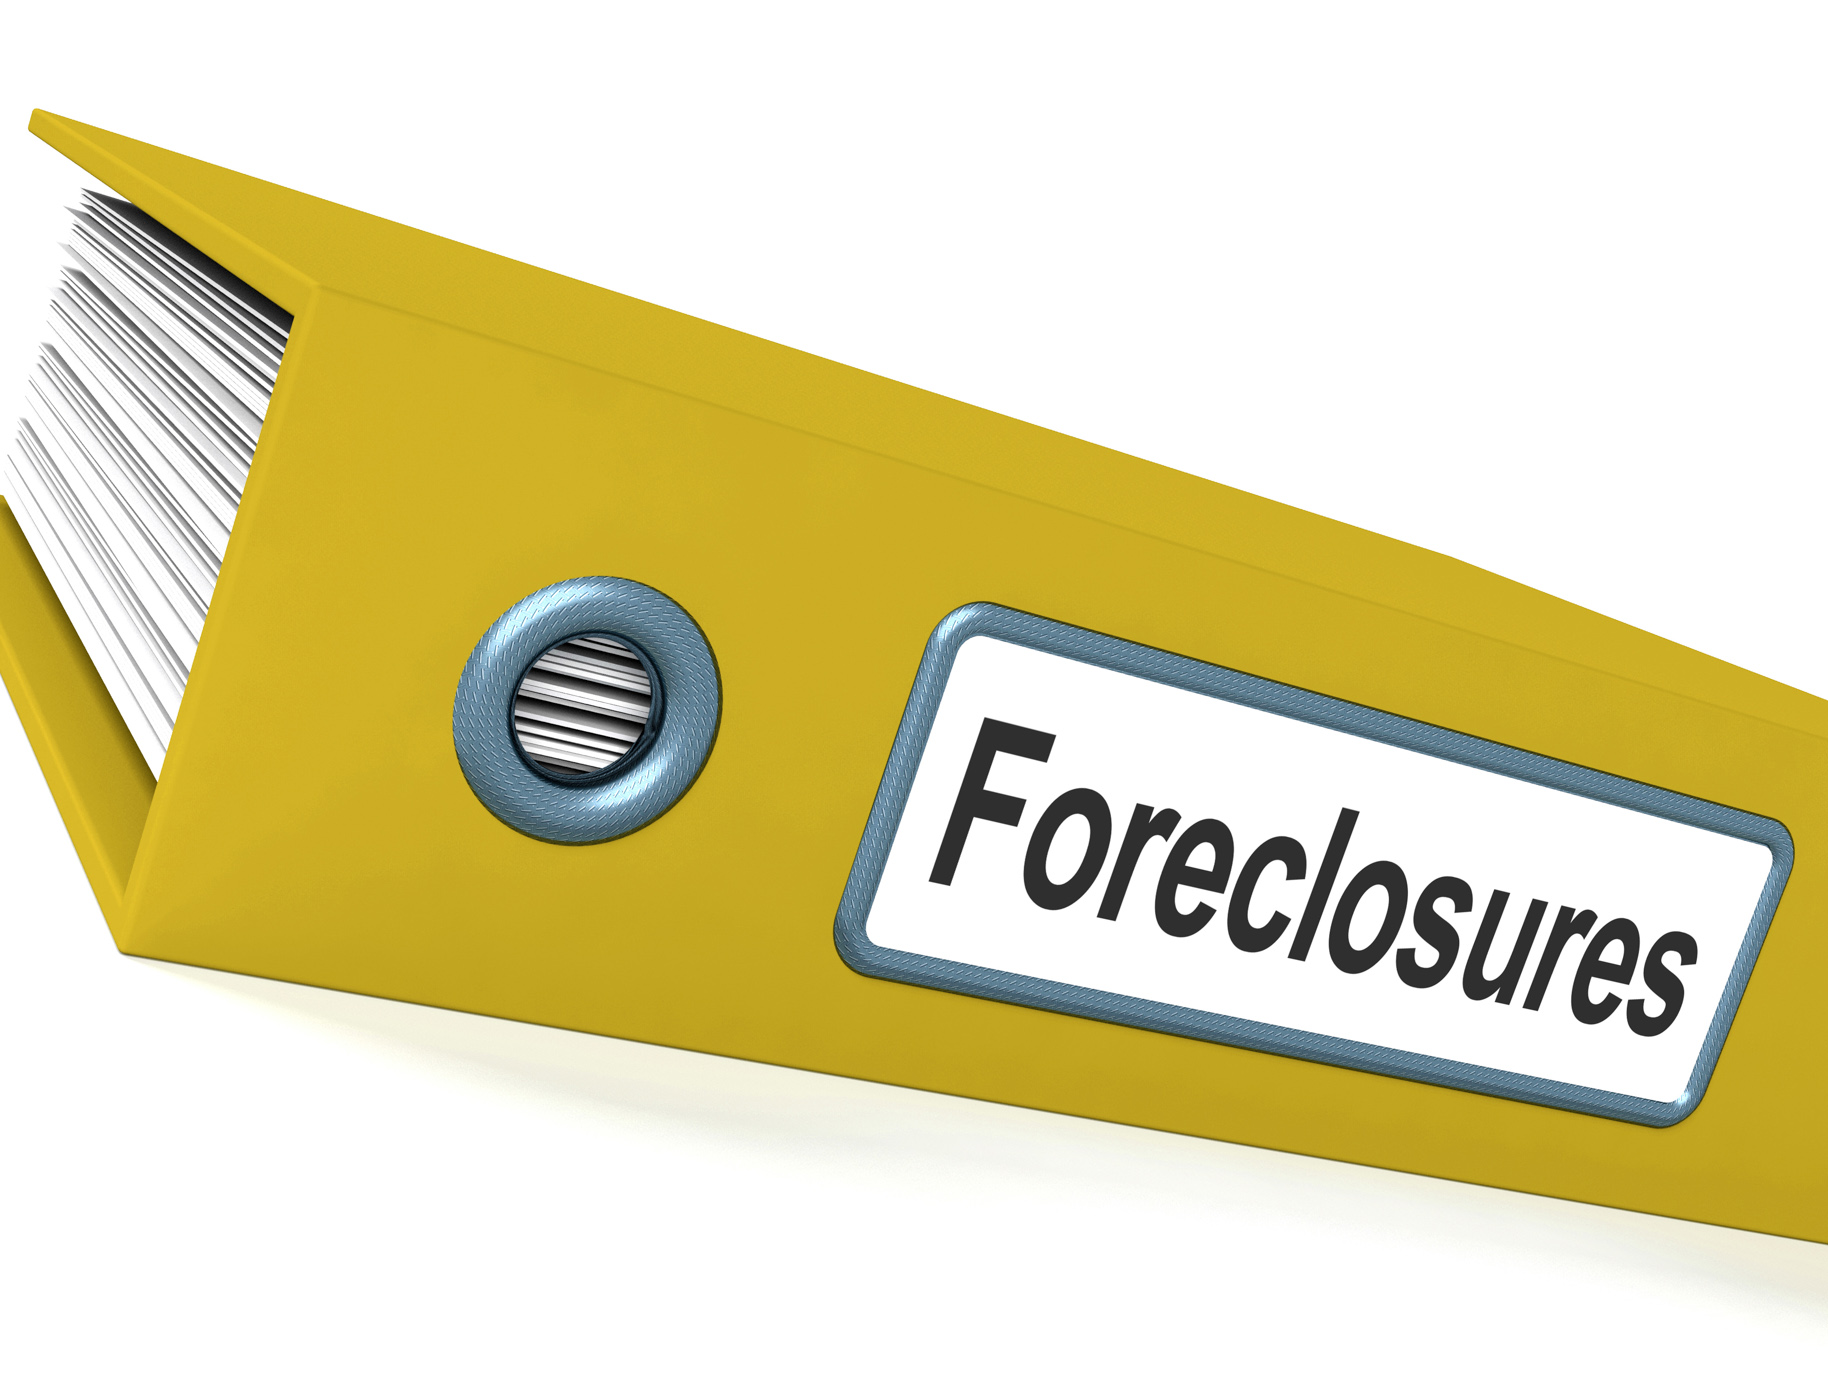 Foreclosures file shows bankruptcy and eviction photo